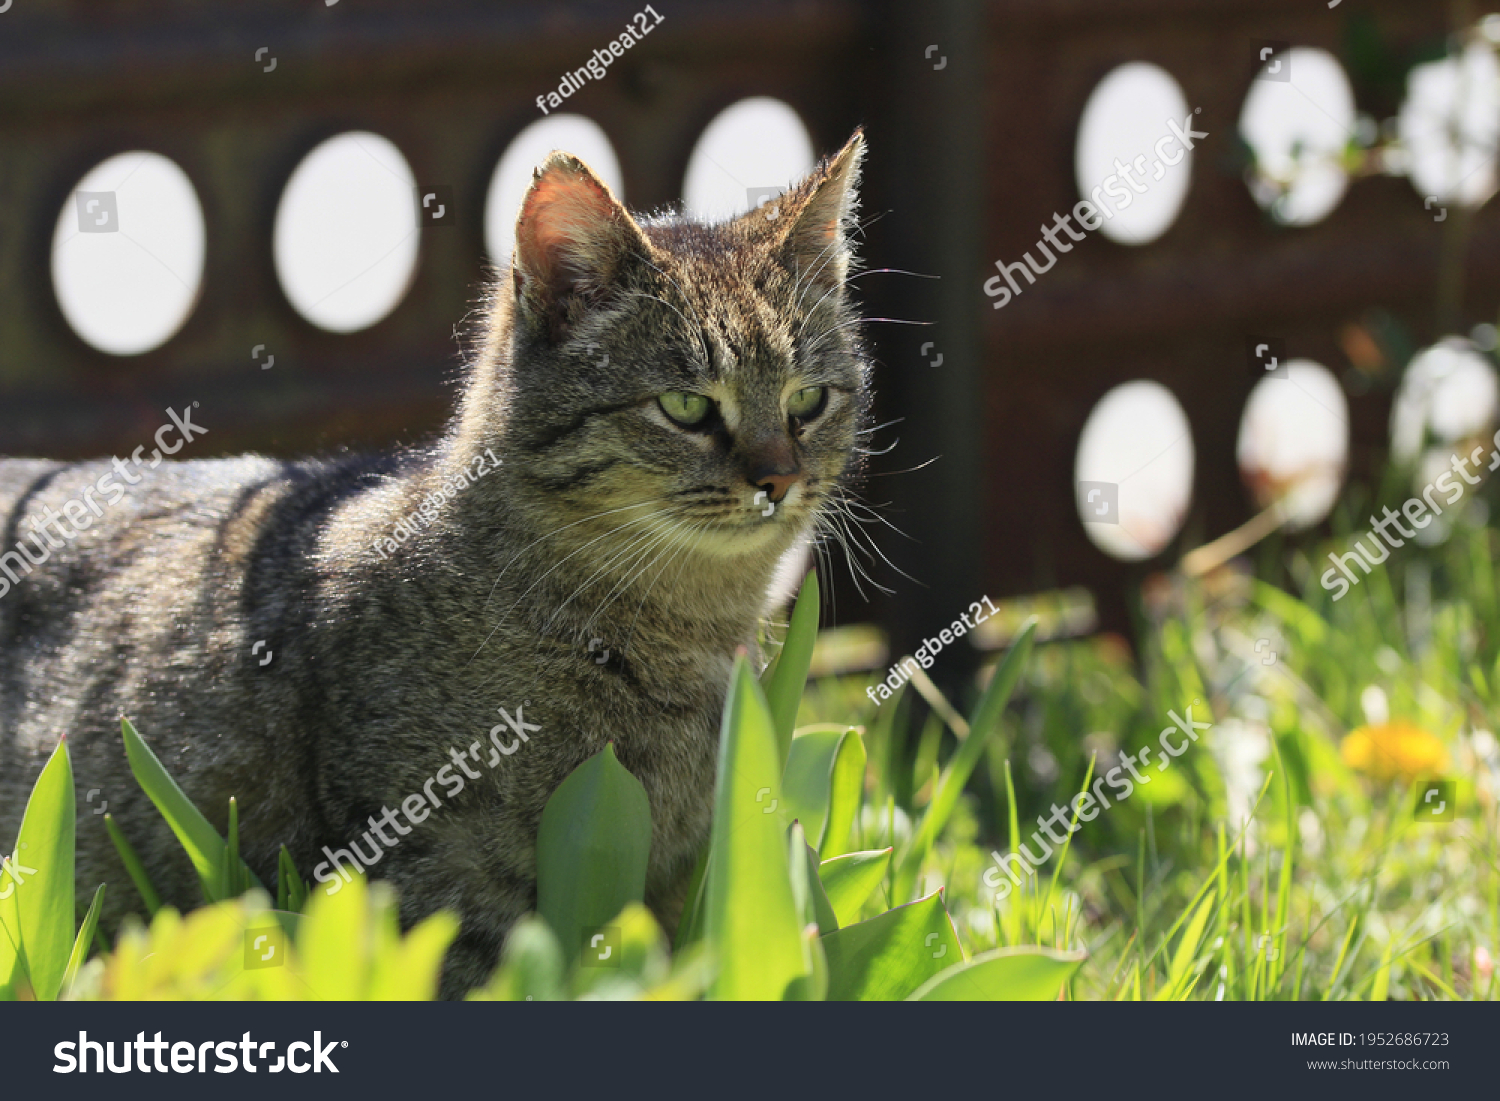 stock-photo-front-of-the-cat-s-head-in-t